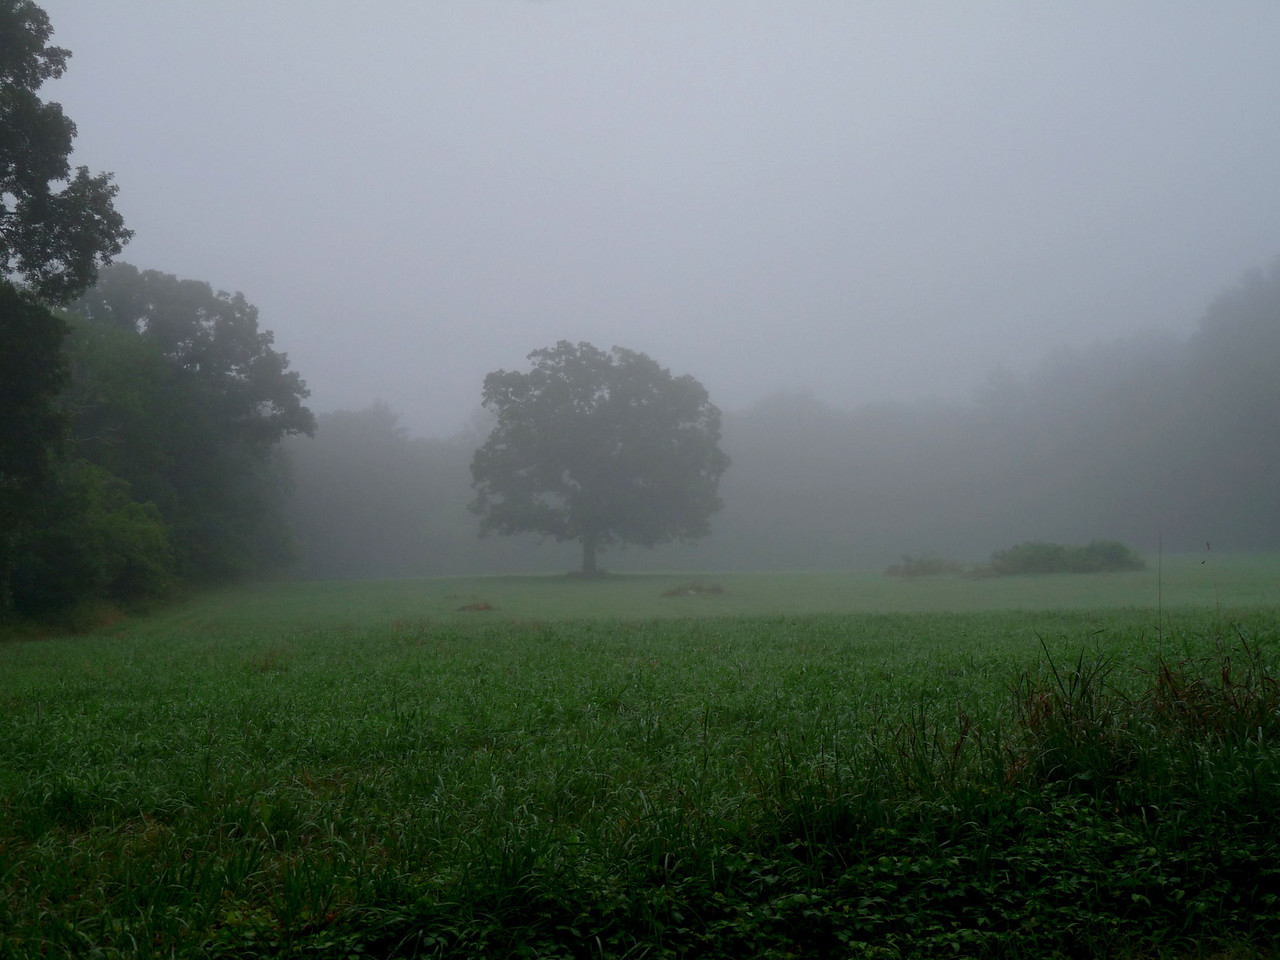 I went out this morning to take pictures of the sunrise but instead, my world was blanketed in fog. So I made lemonade.